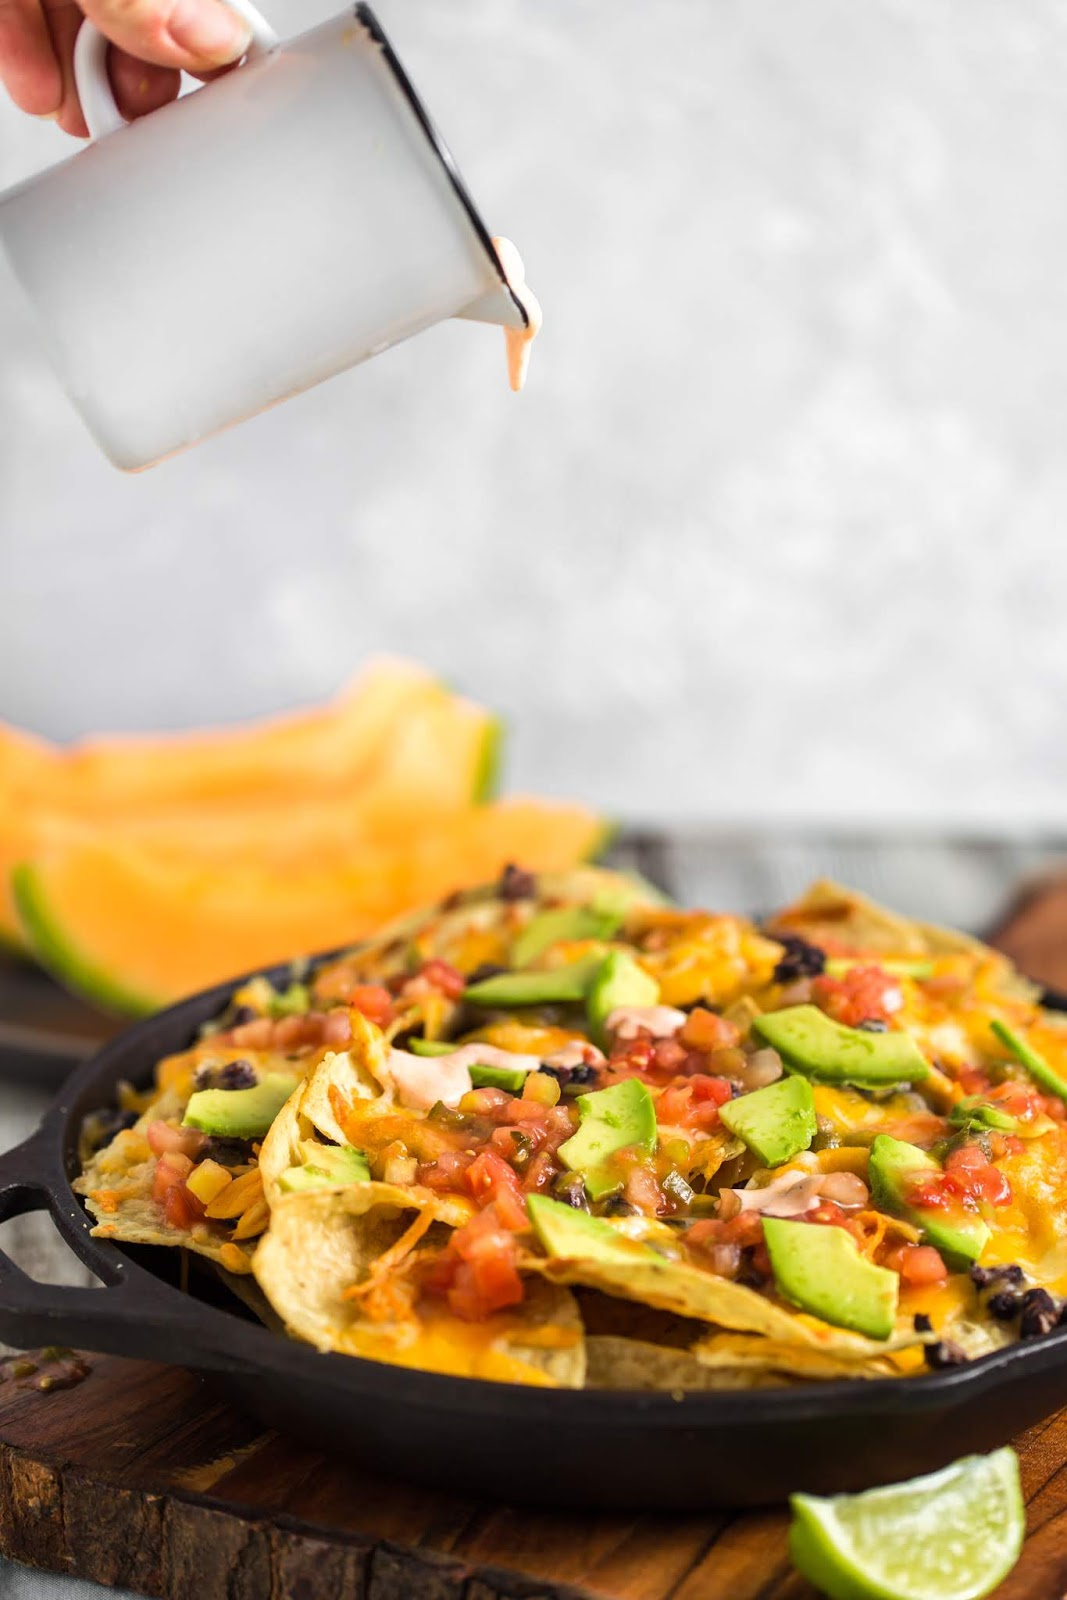 Hand pouring cup of sauce onto plate of nachos